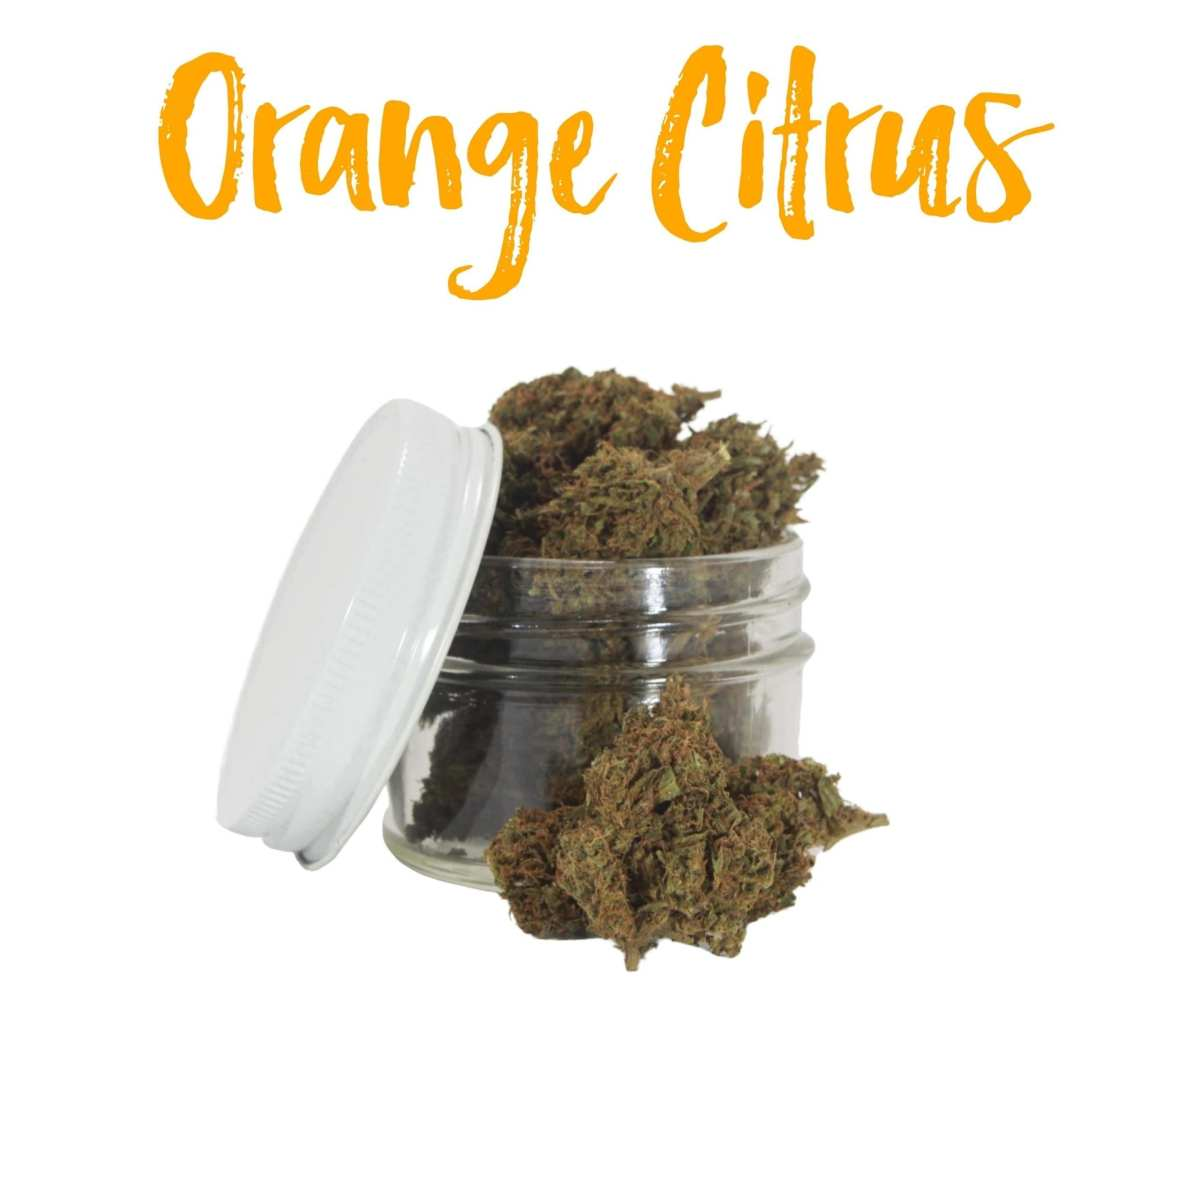 Orange Citrus Hemp Flower